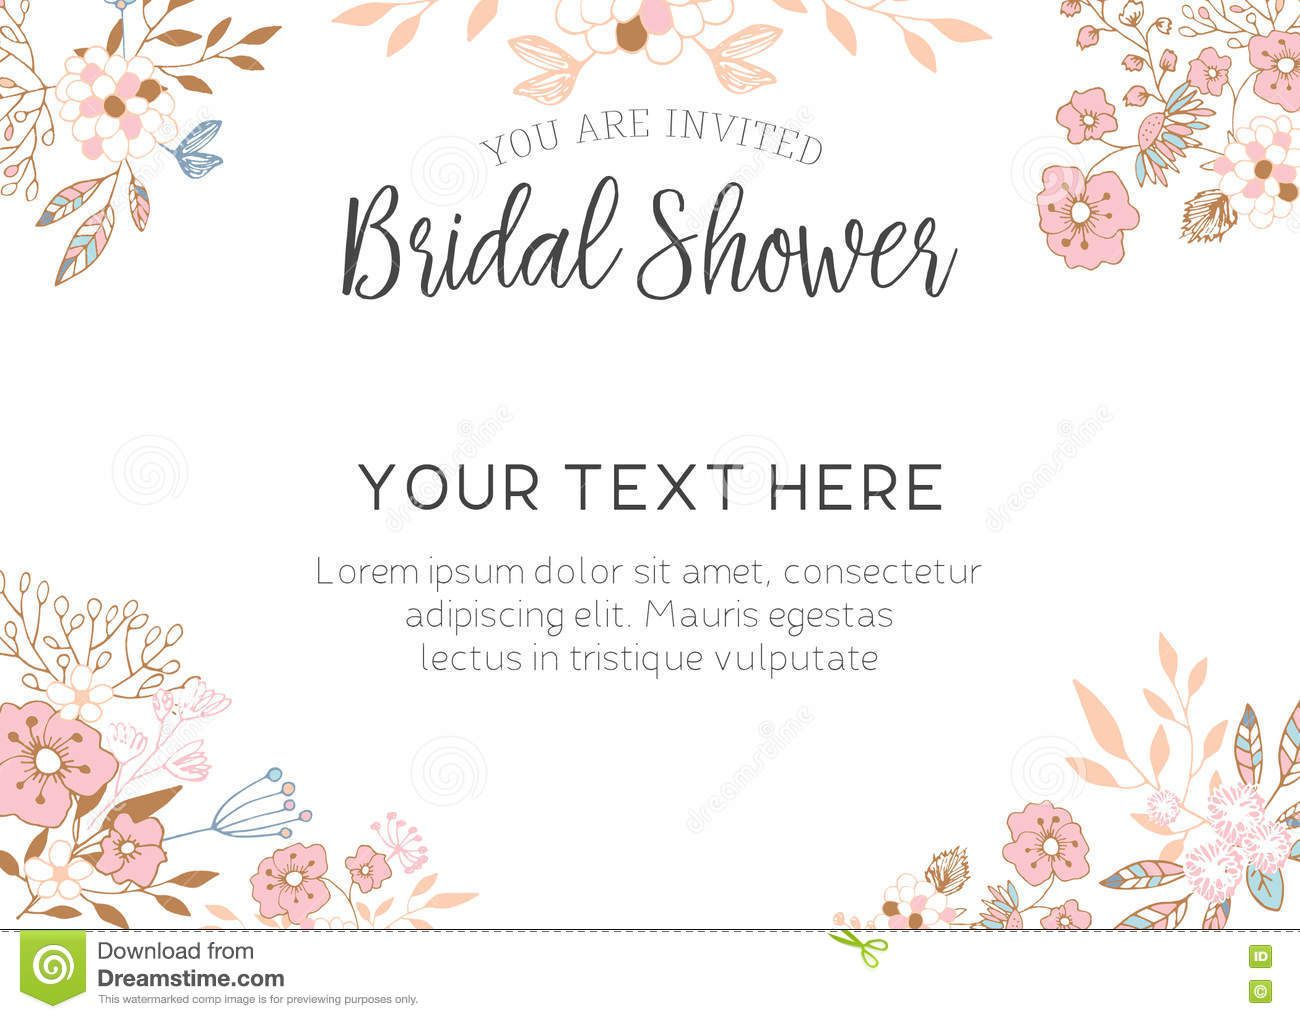 006 Remarkable Free Bridal Shower Invite Template Highest Clarity  Templates Invitation To Print Online Wedding For Microsoft WordFull